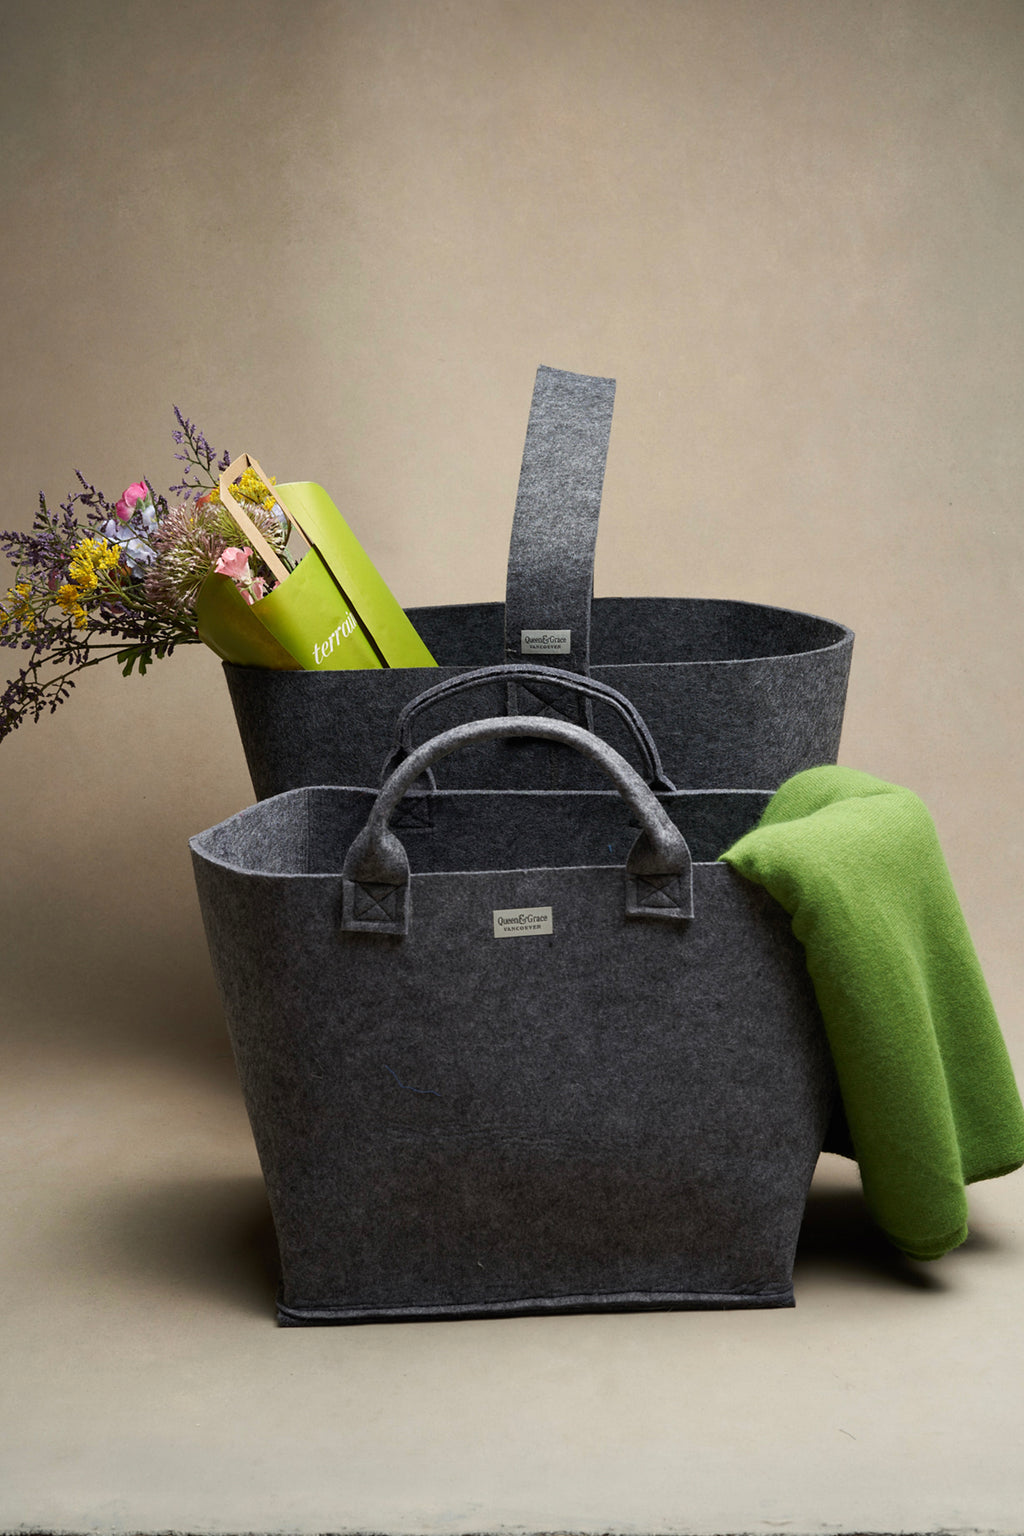 Felt Totes - Accessories - Queen & Grace